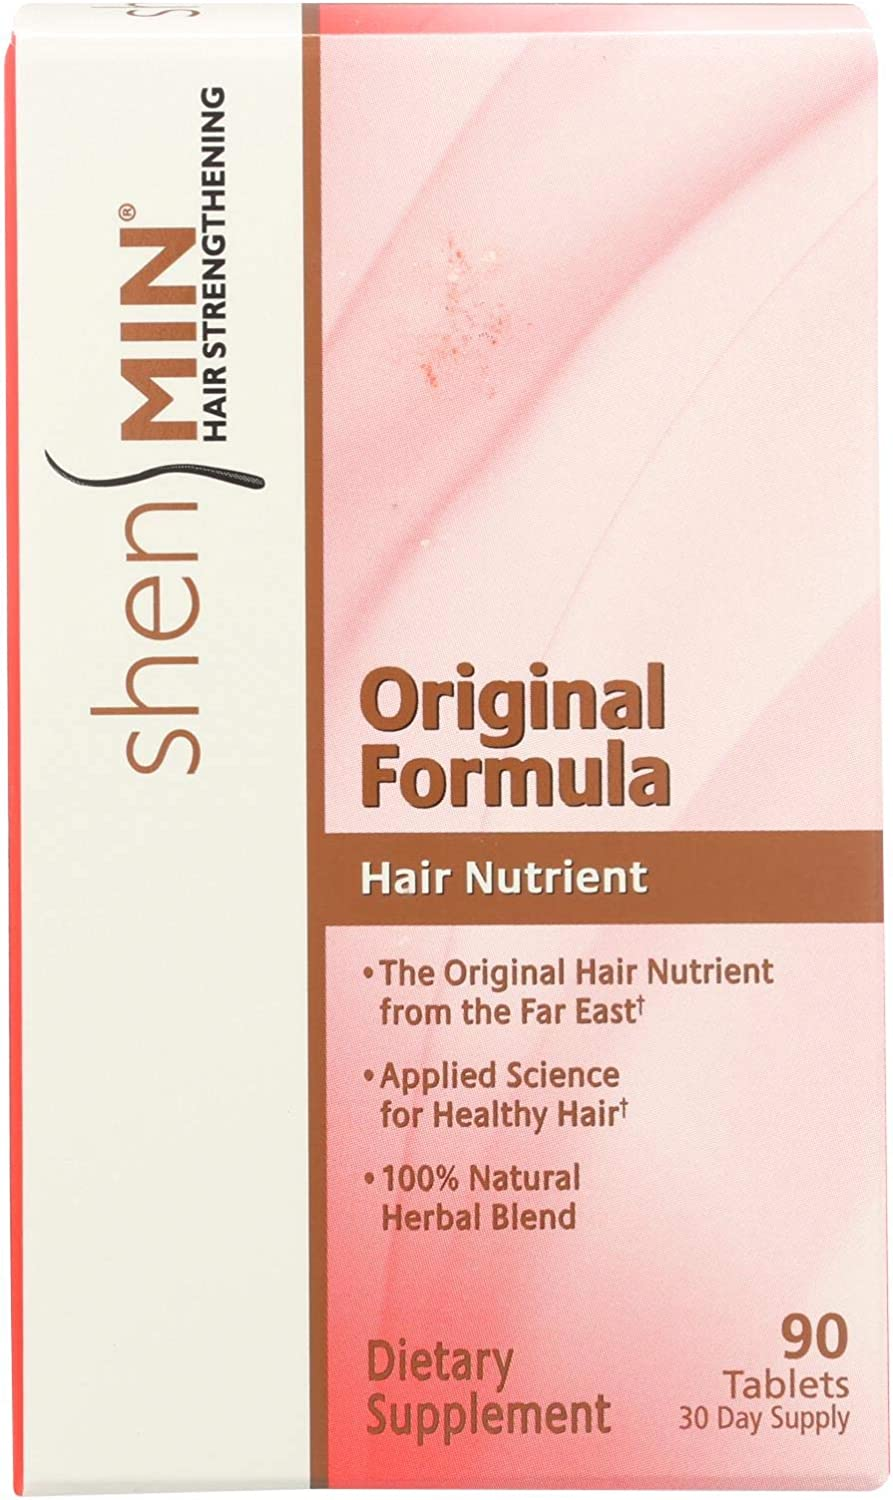 Shen Min Hair Nutrient NEW Max 84% OFF before selling ☆